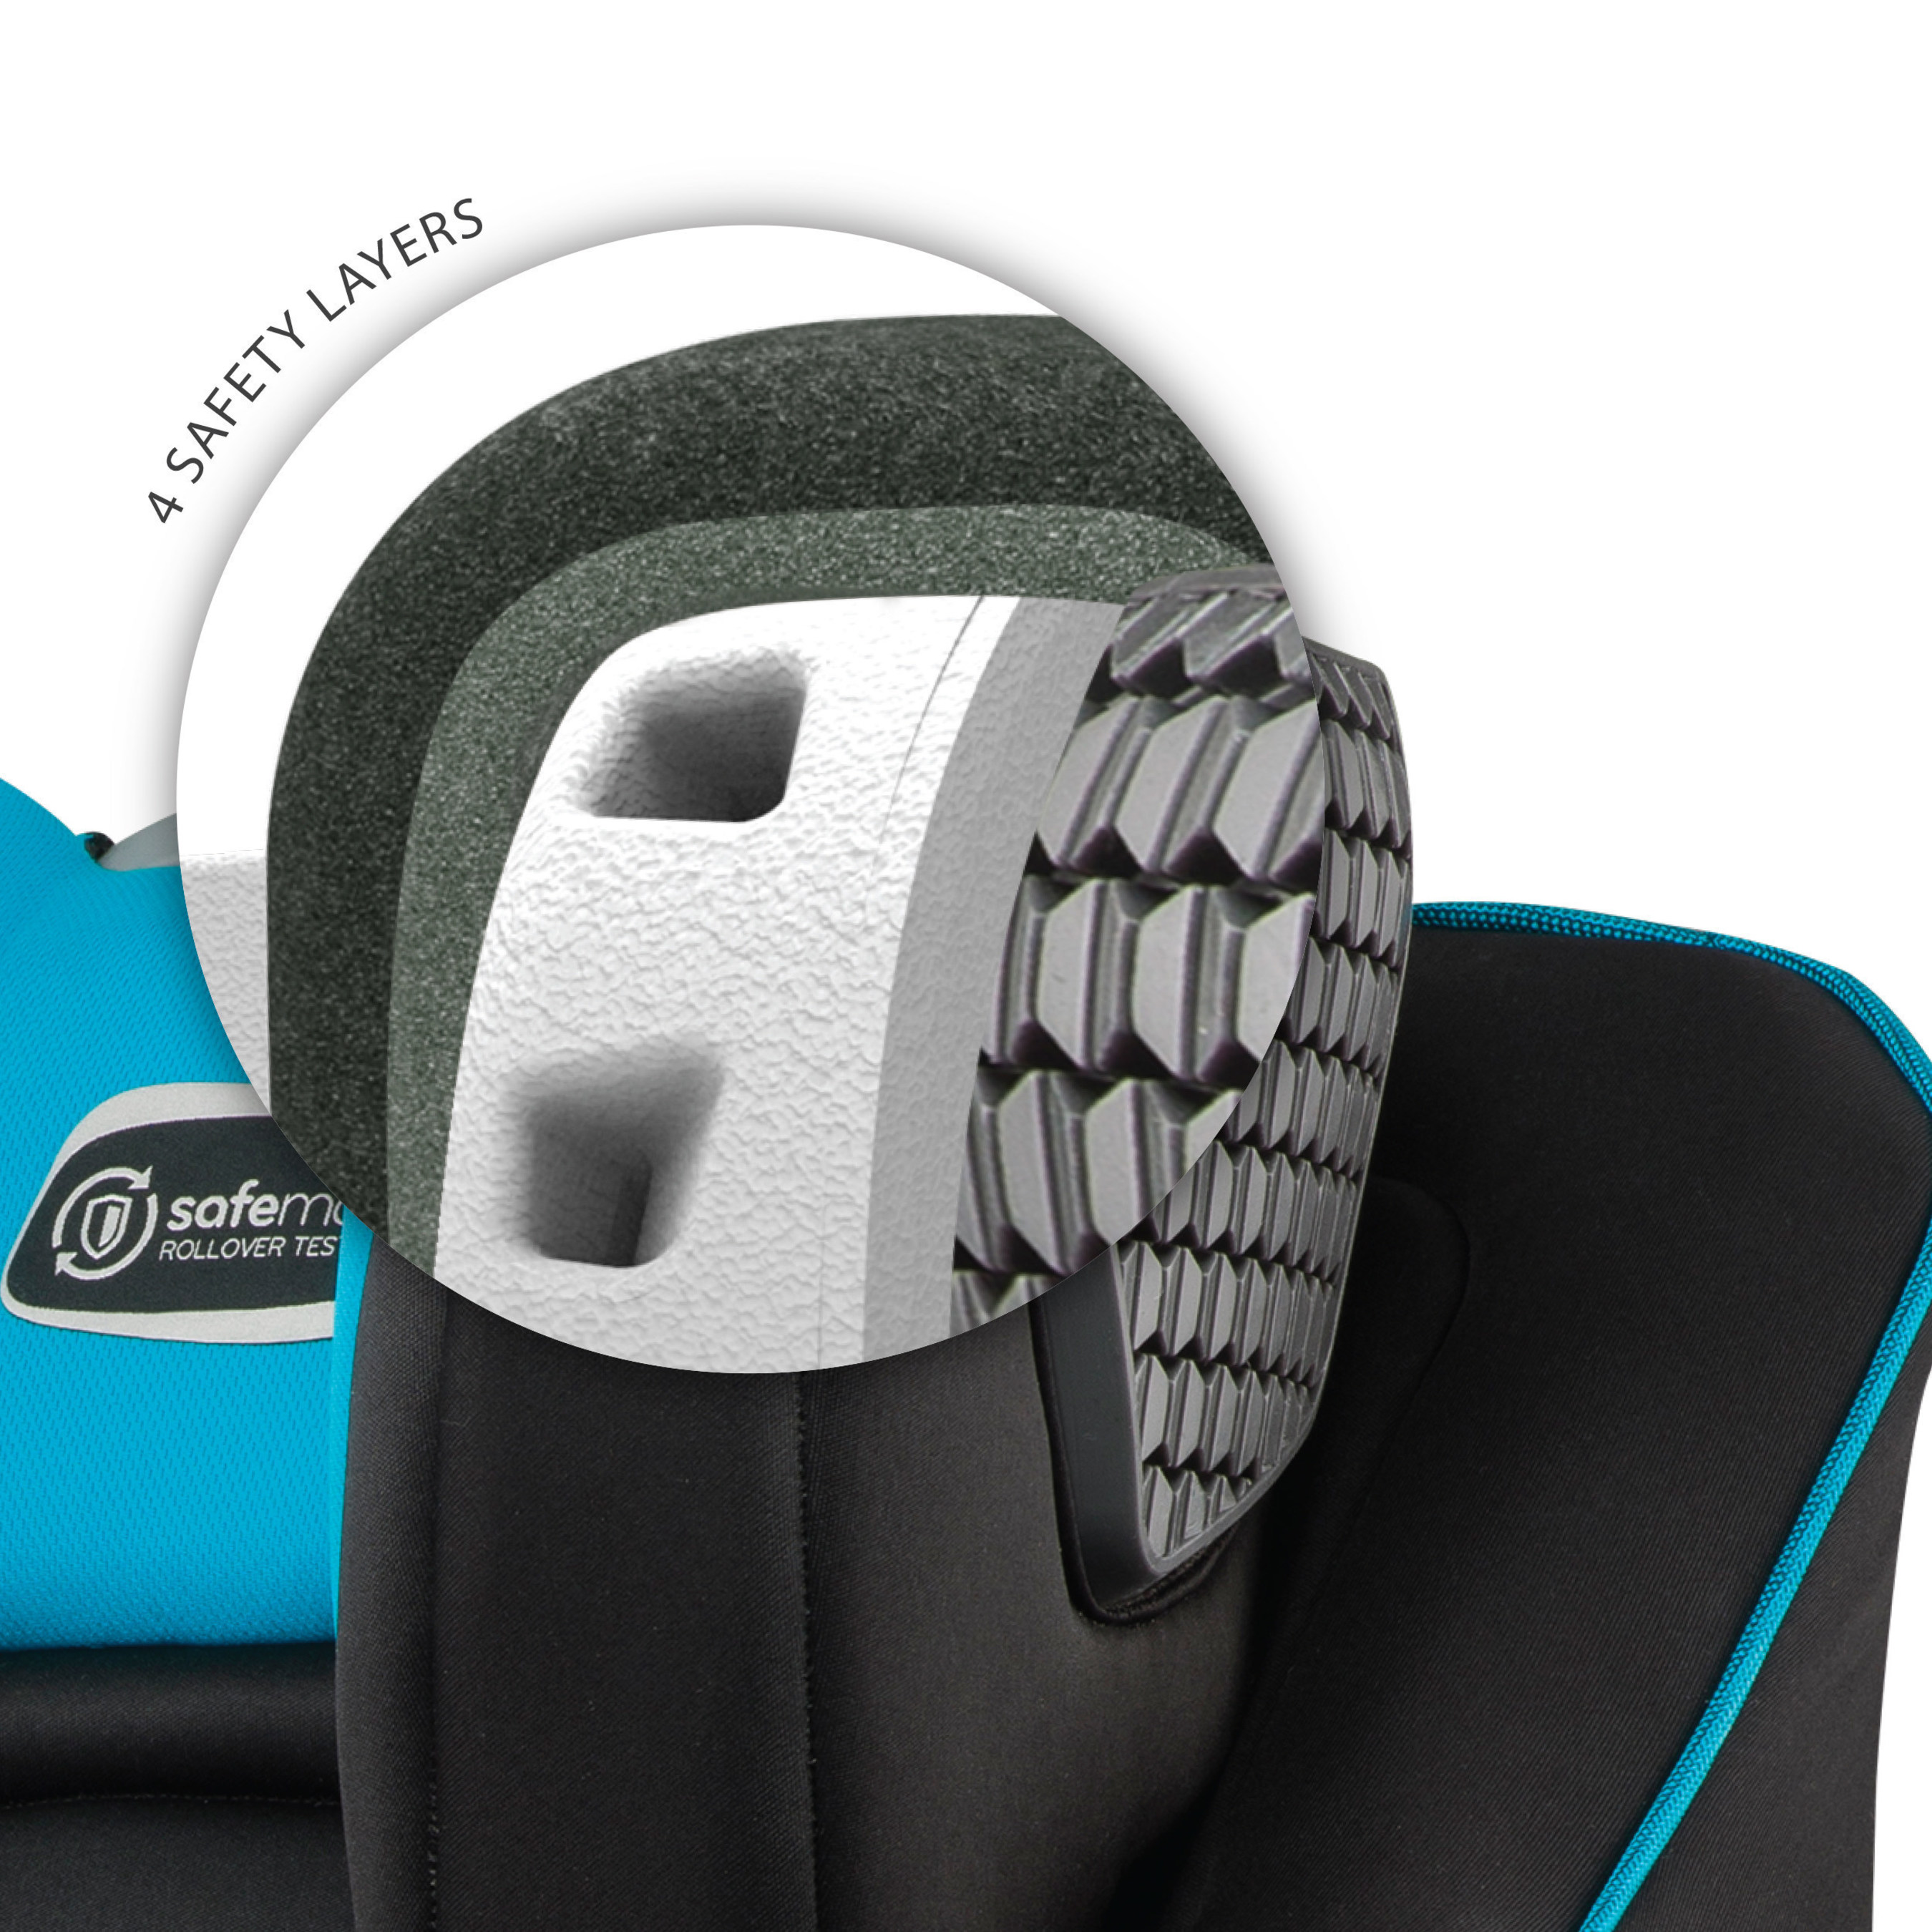 Evenflo SafeZoneTM Headrest A Combination Of Premium Materials Designed To Absorb And